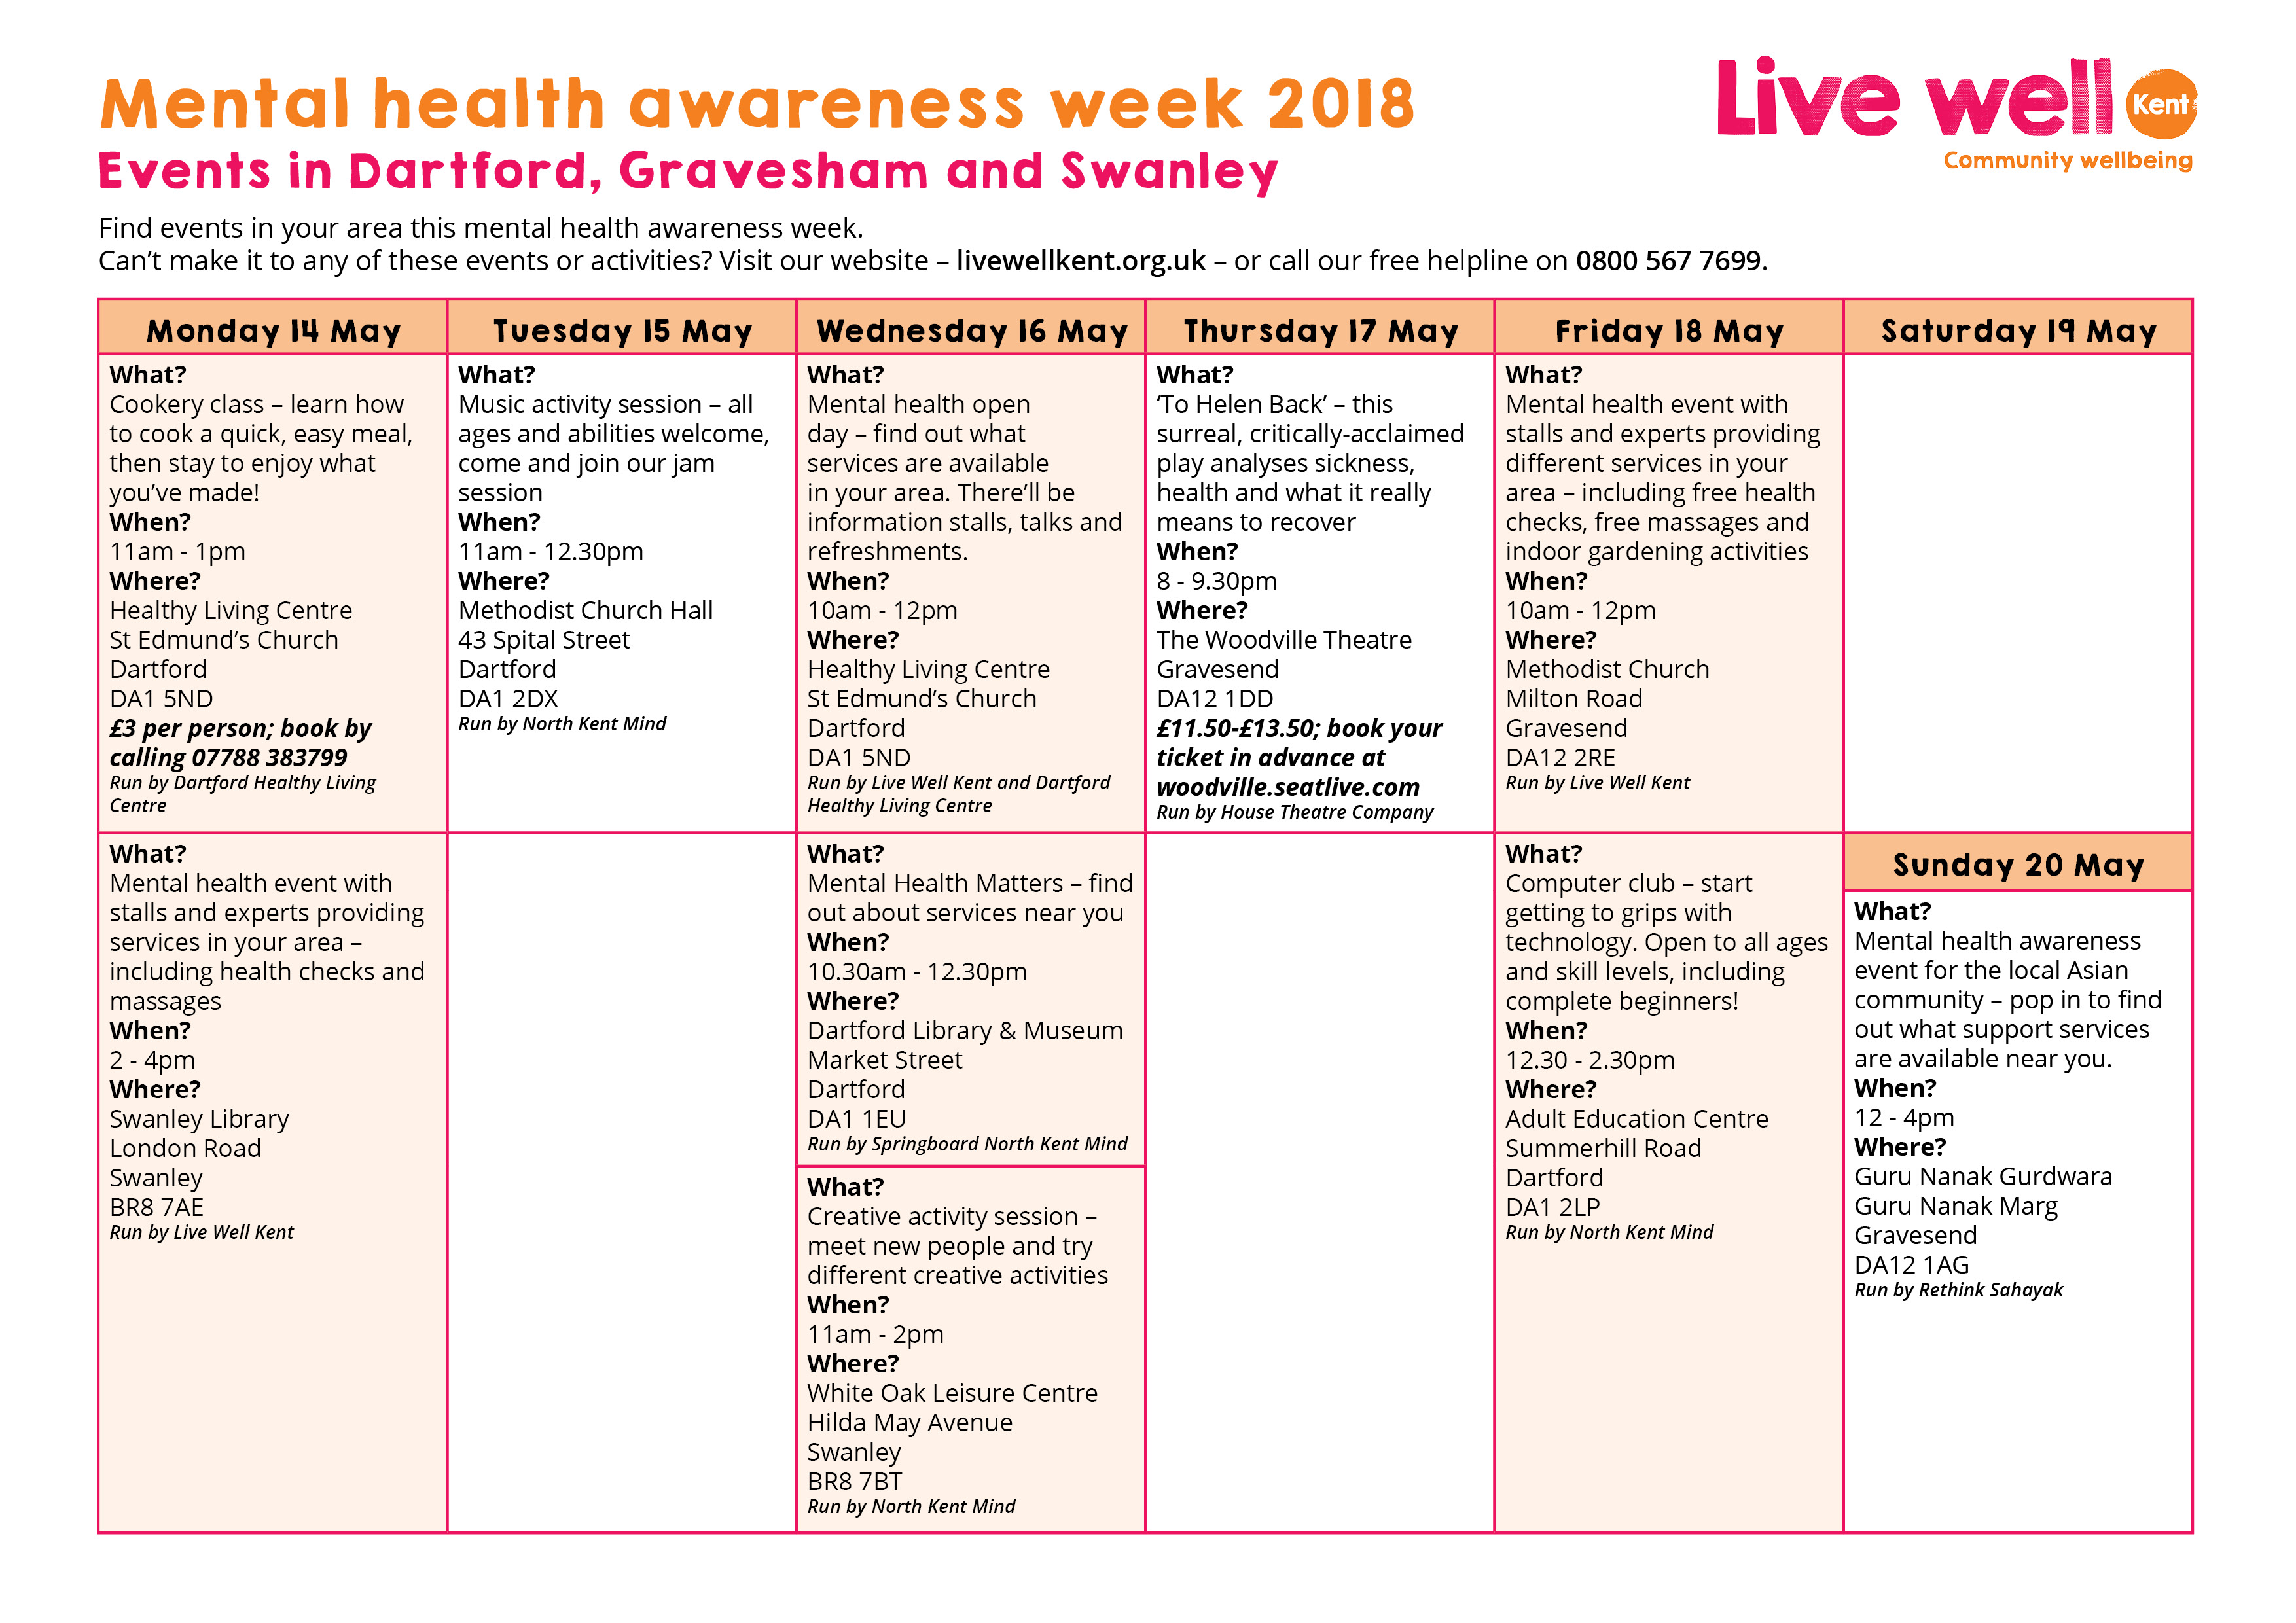 a calendar of events for mental health awareness week in dartford gravesham and swanley